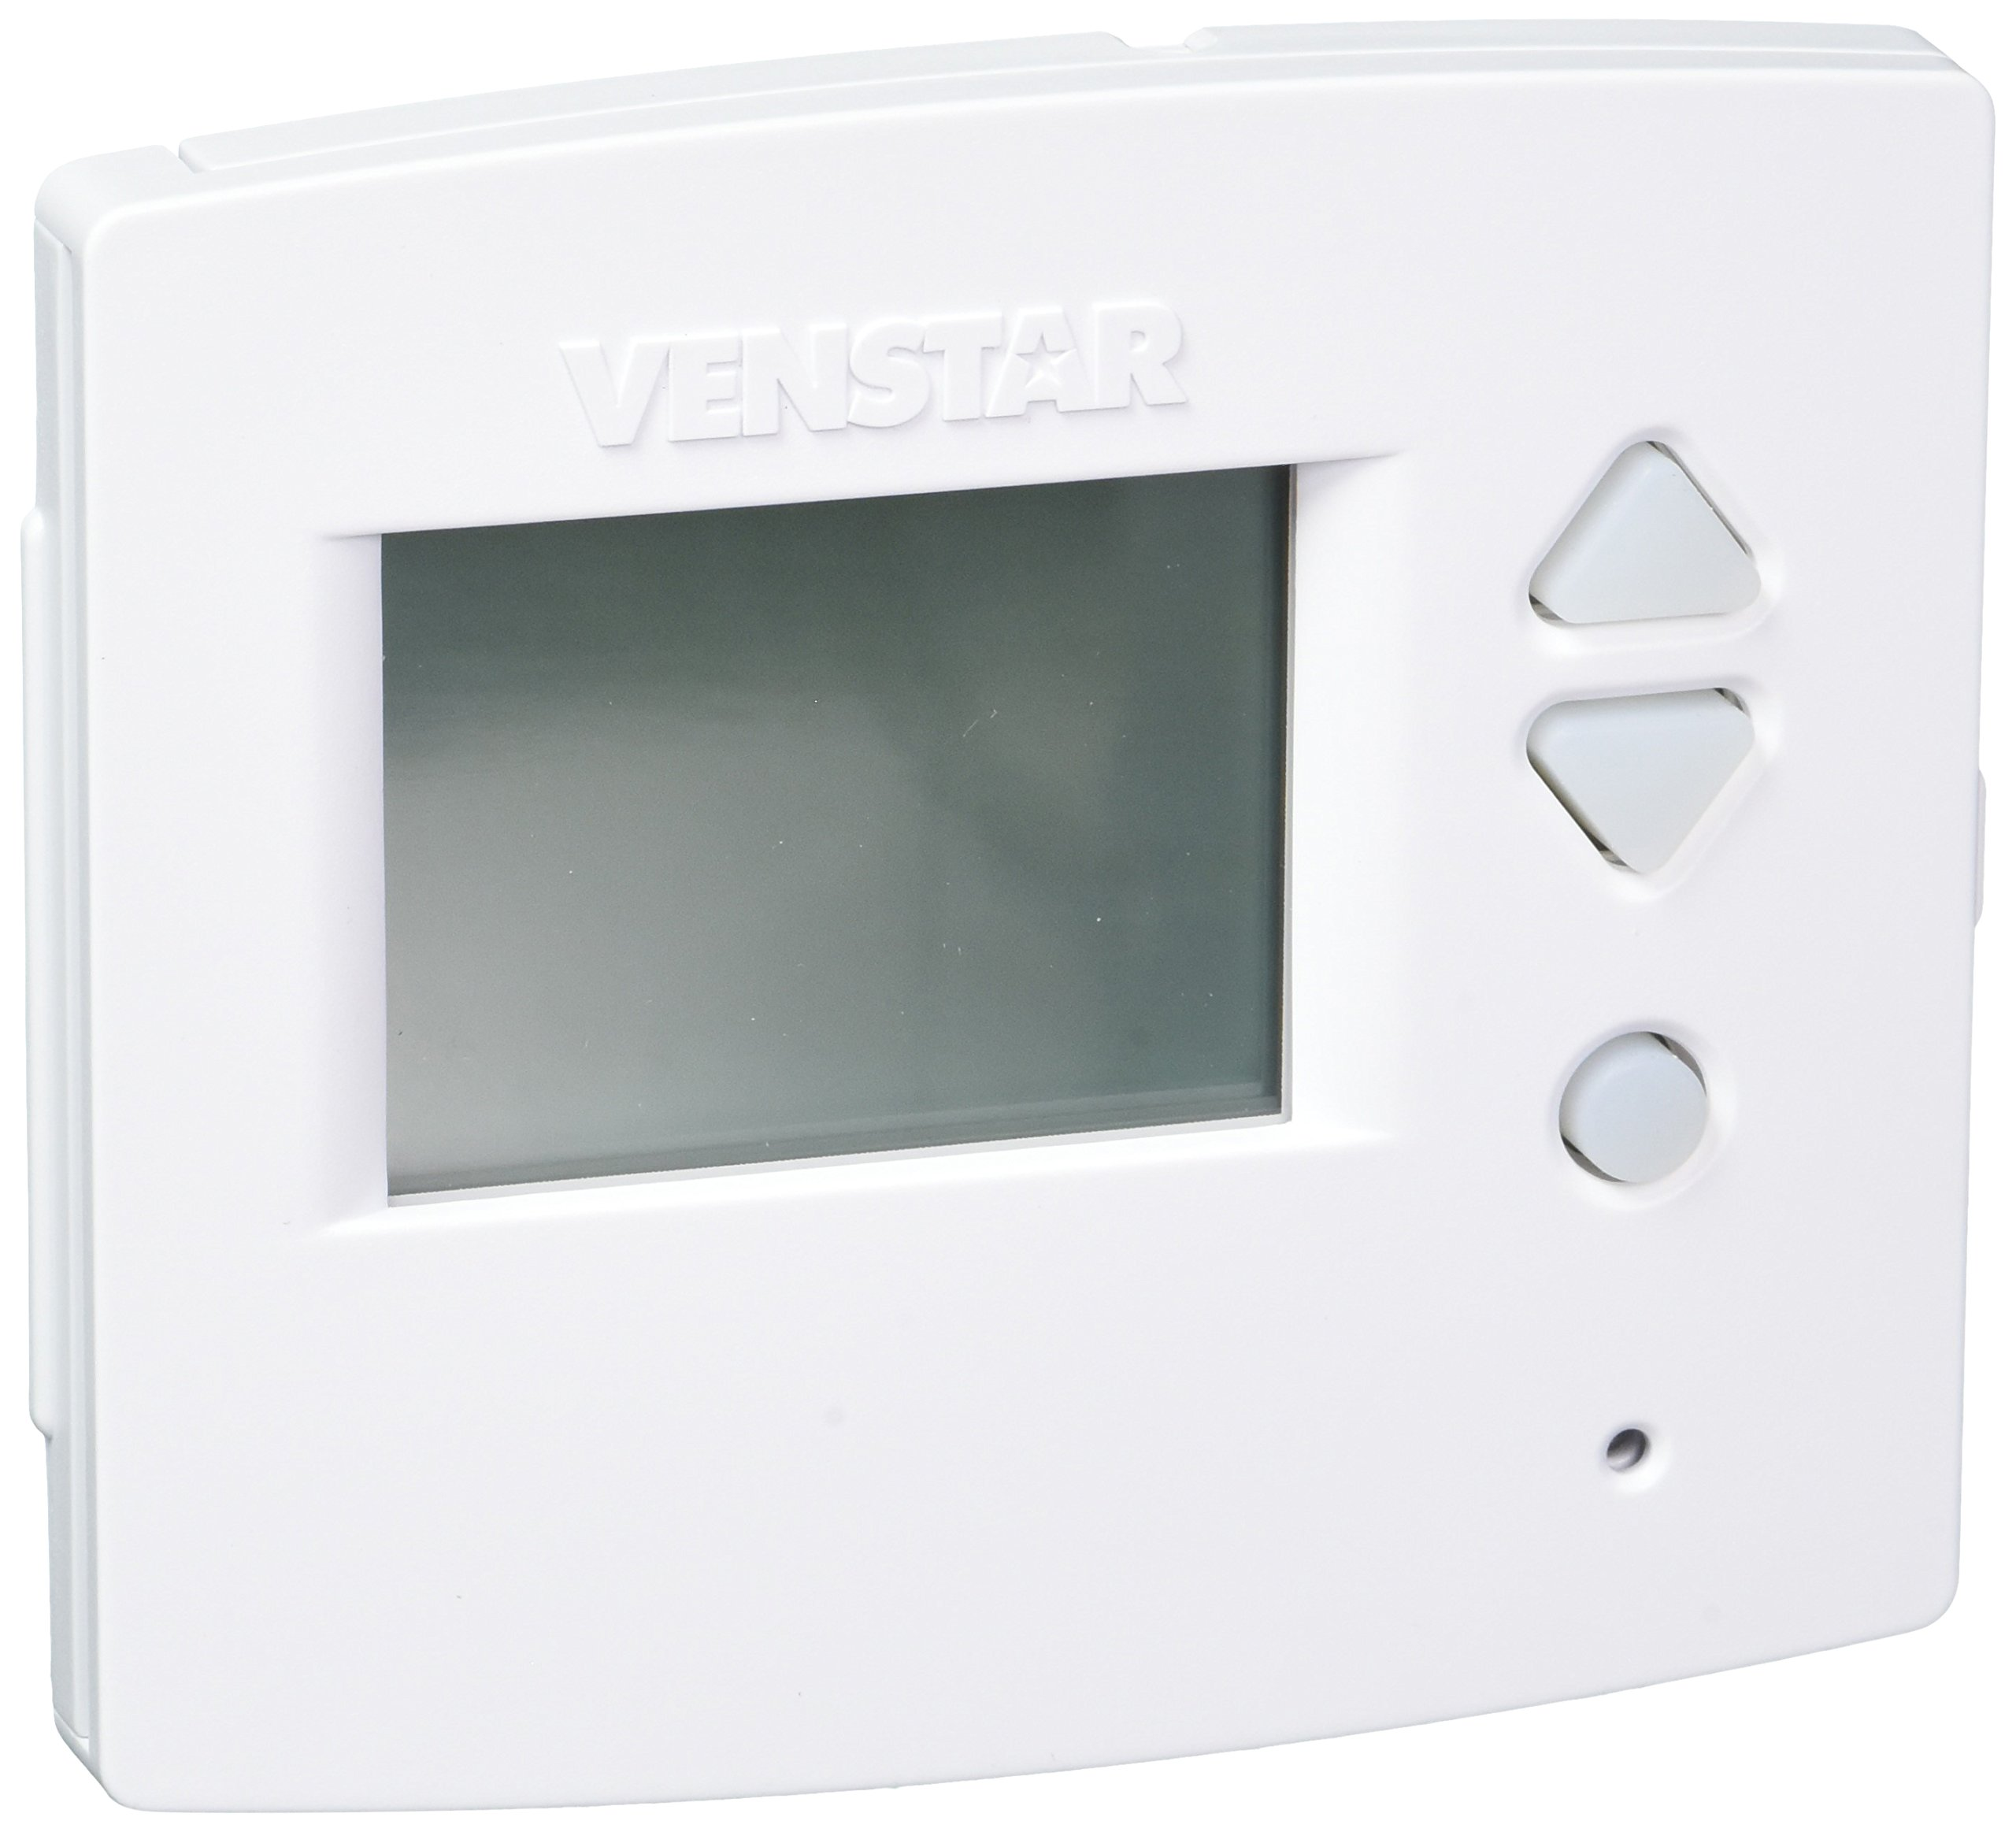 Venstar T3700 Residential Voyager Wifi Ready Thermostat - Works W/ Alexa When Wifi Module Installed